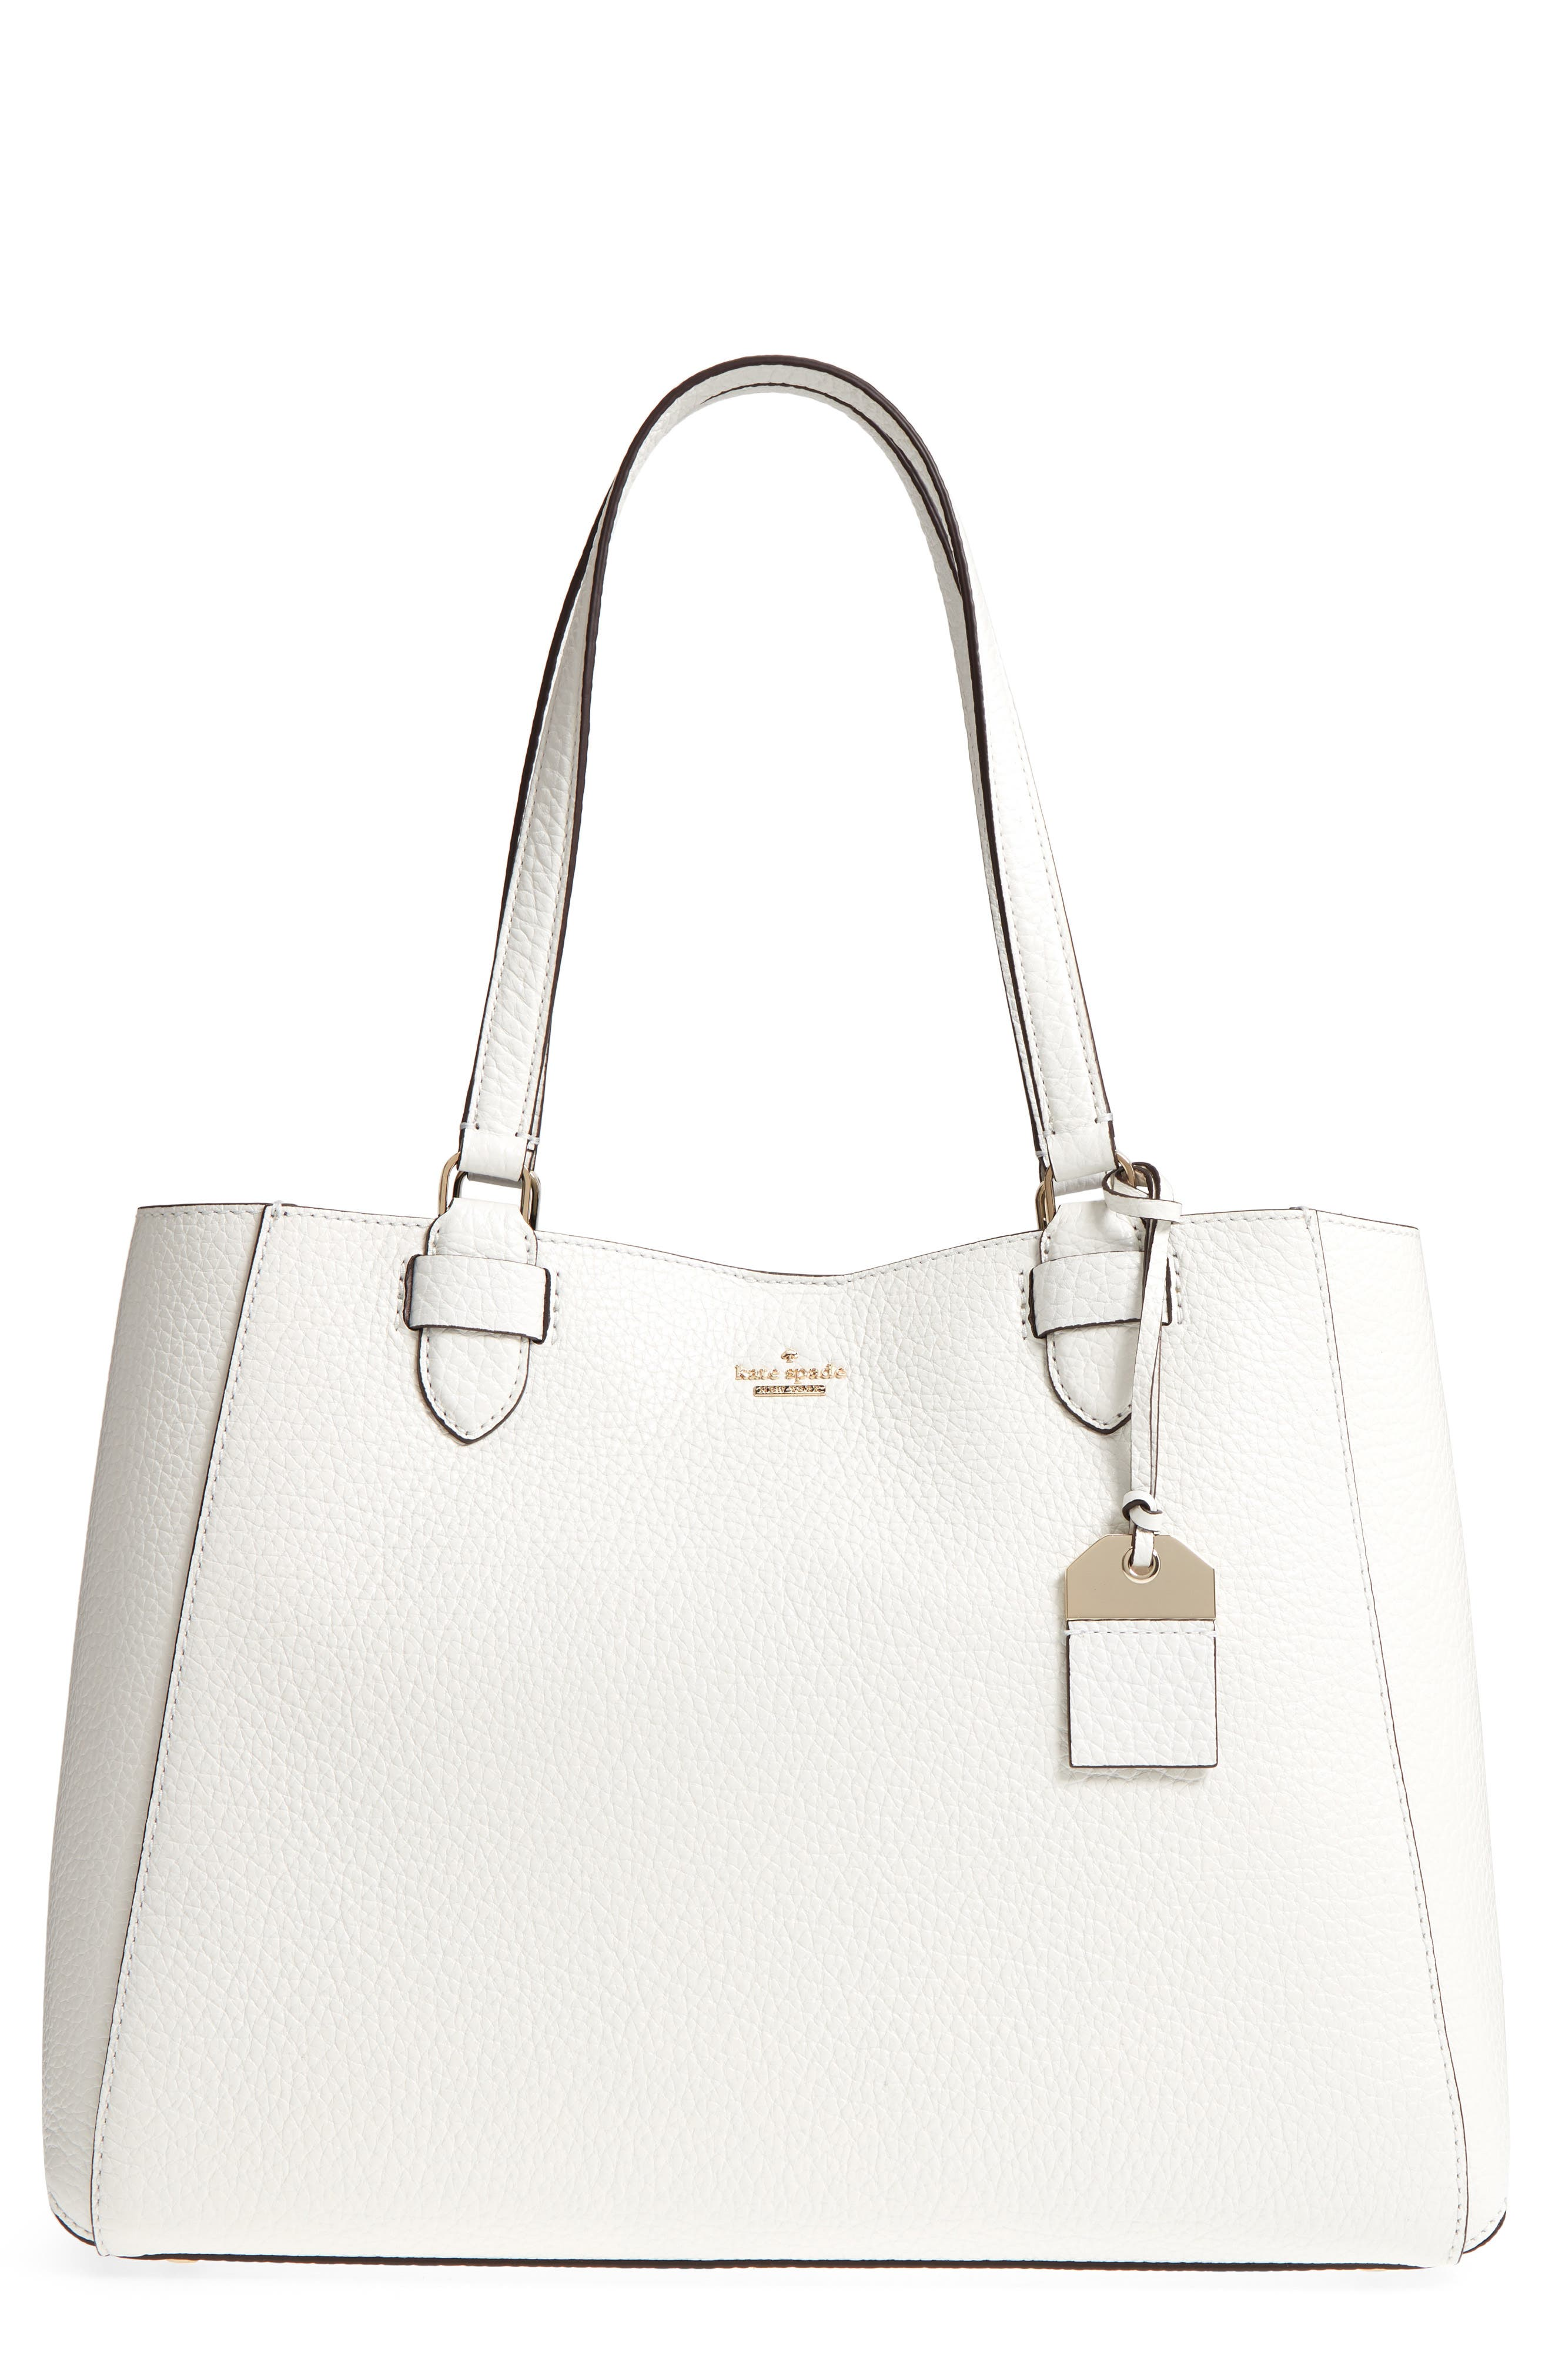 carter street - tyler leather tote,                             Main thumbnail 1, color,                             Bright White